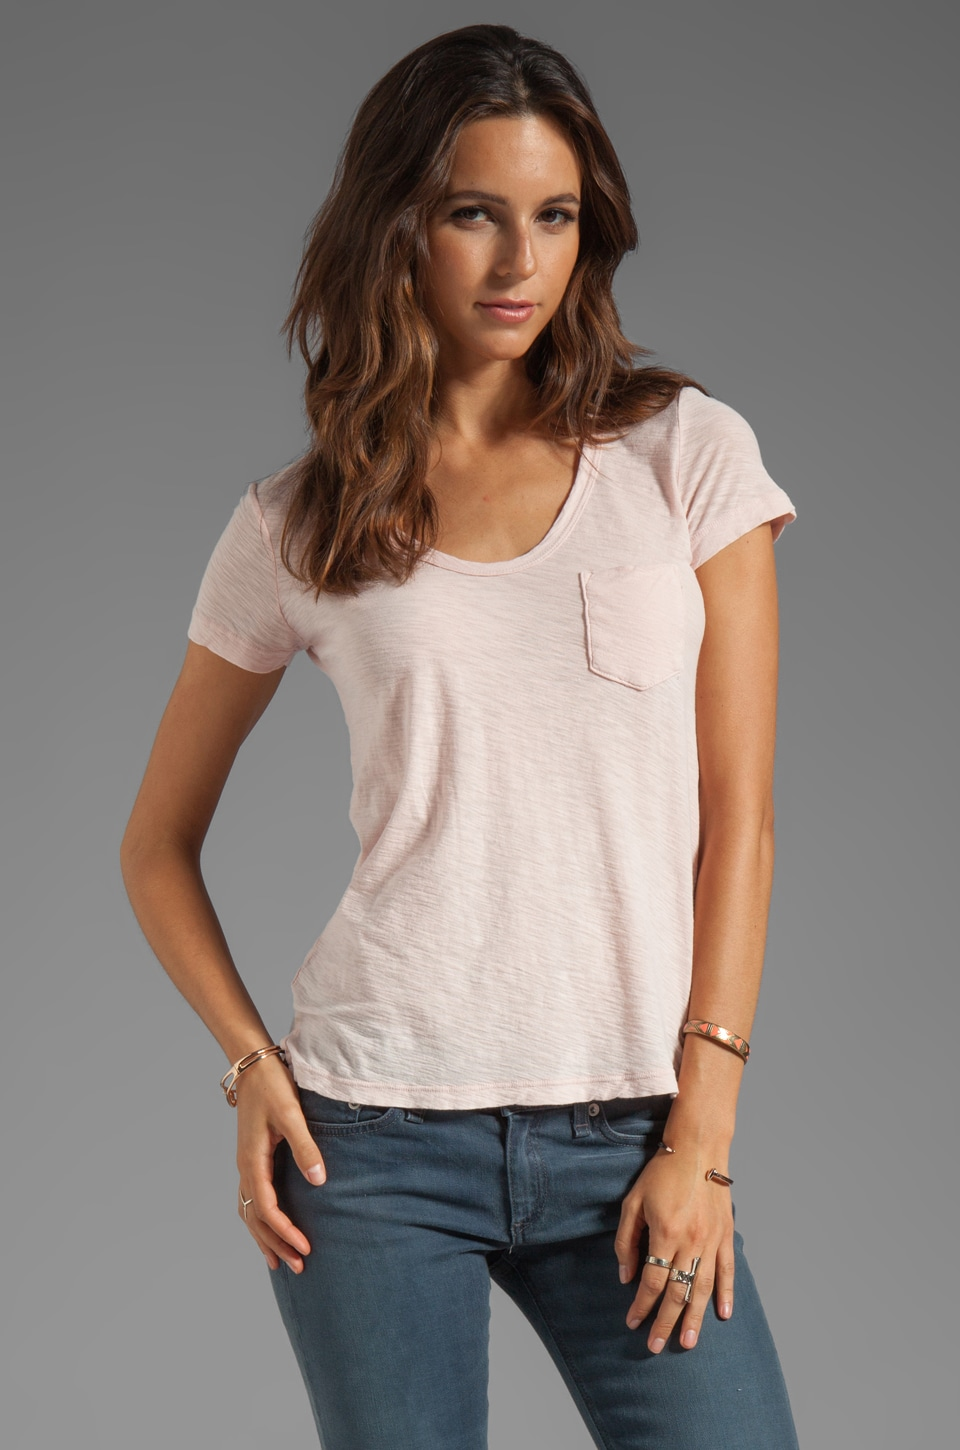 James Perse Sheer Slub Boyfriend Tee in Puff